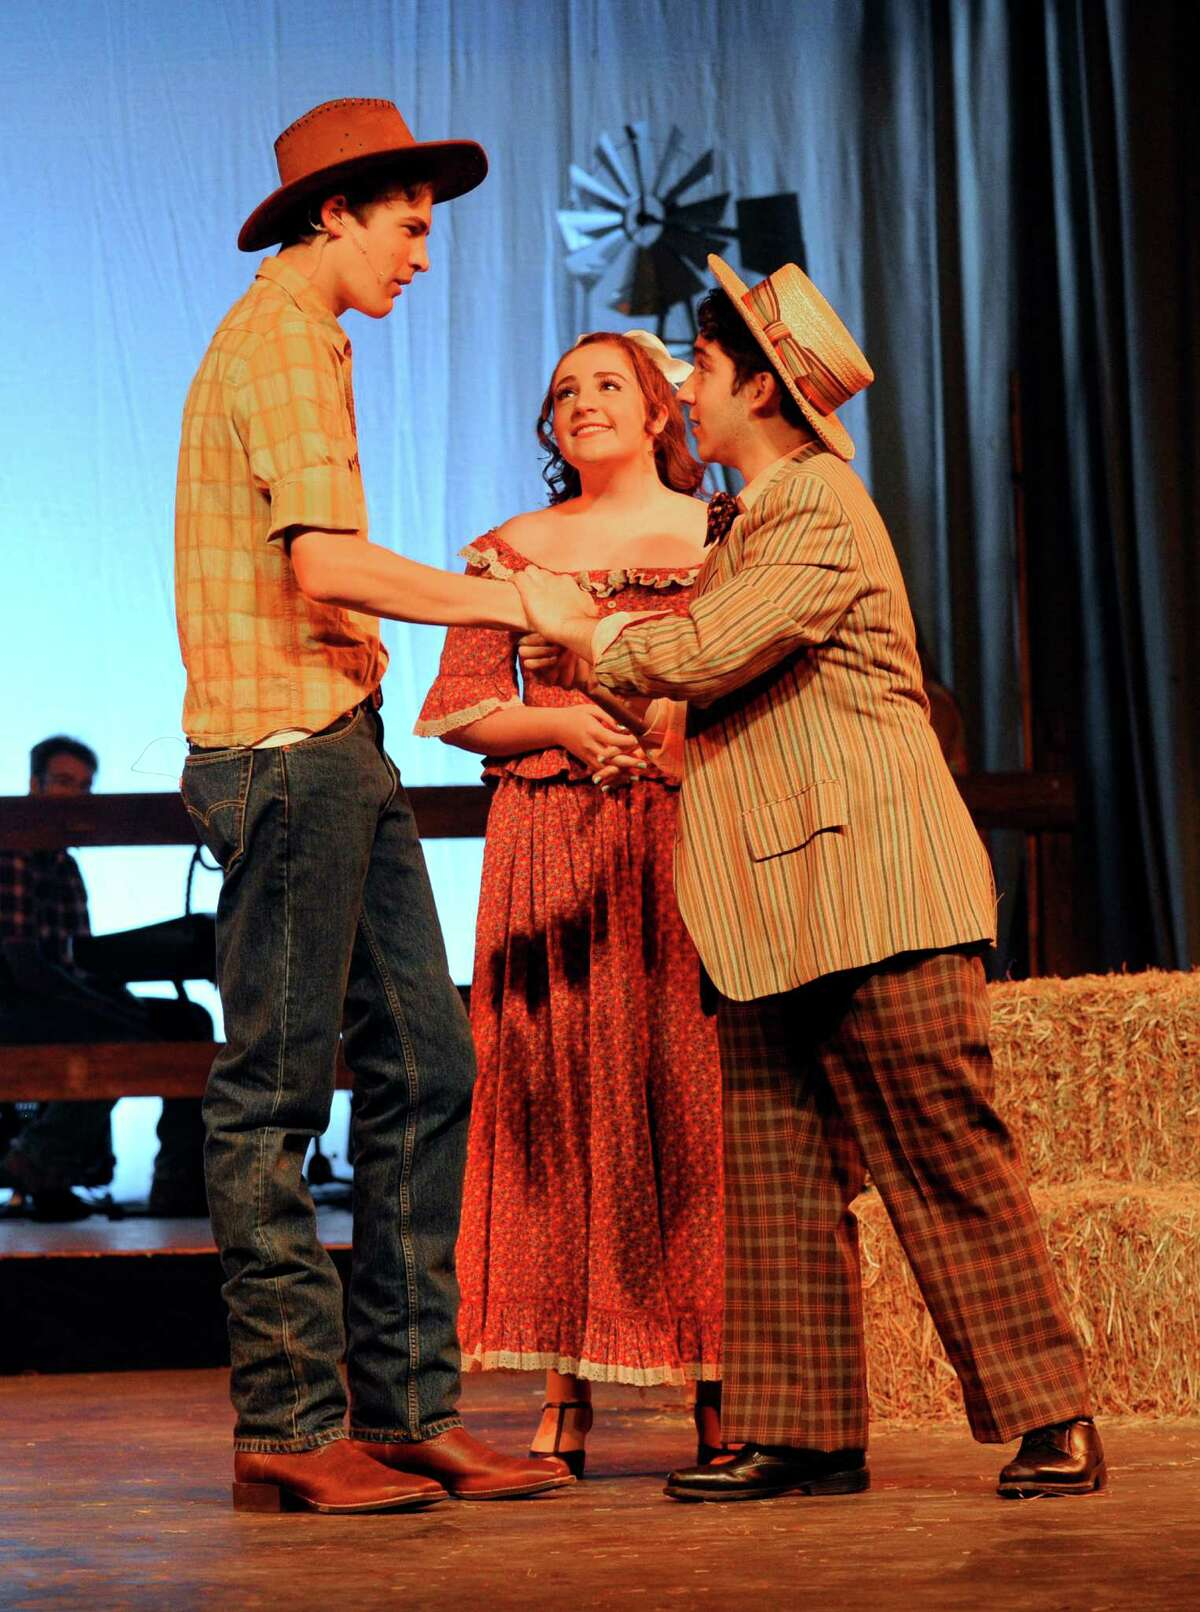 From left, Alex Gerbo, Isabella Mercaldo and Giovanni Fardella perform a scene from